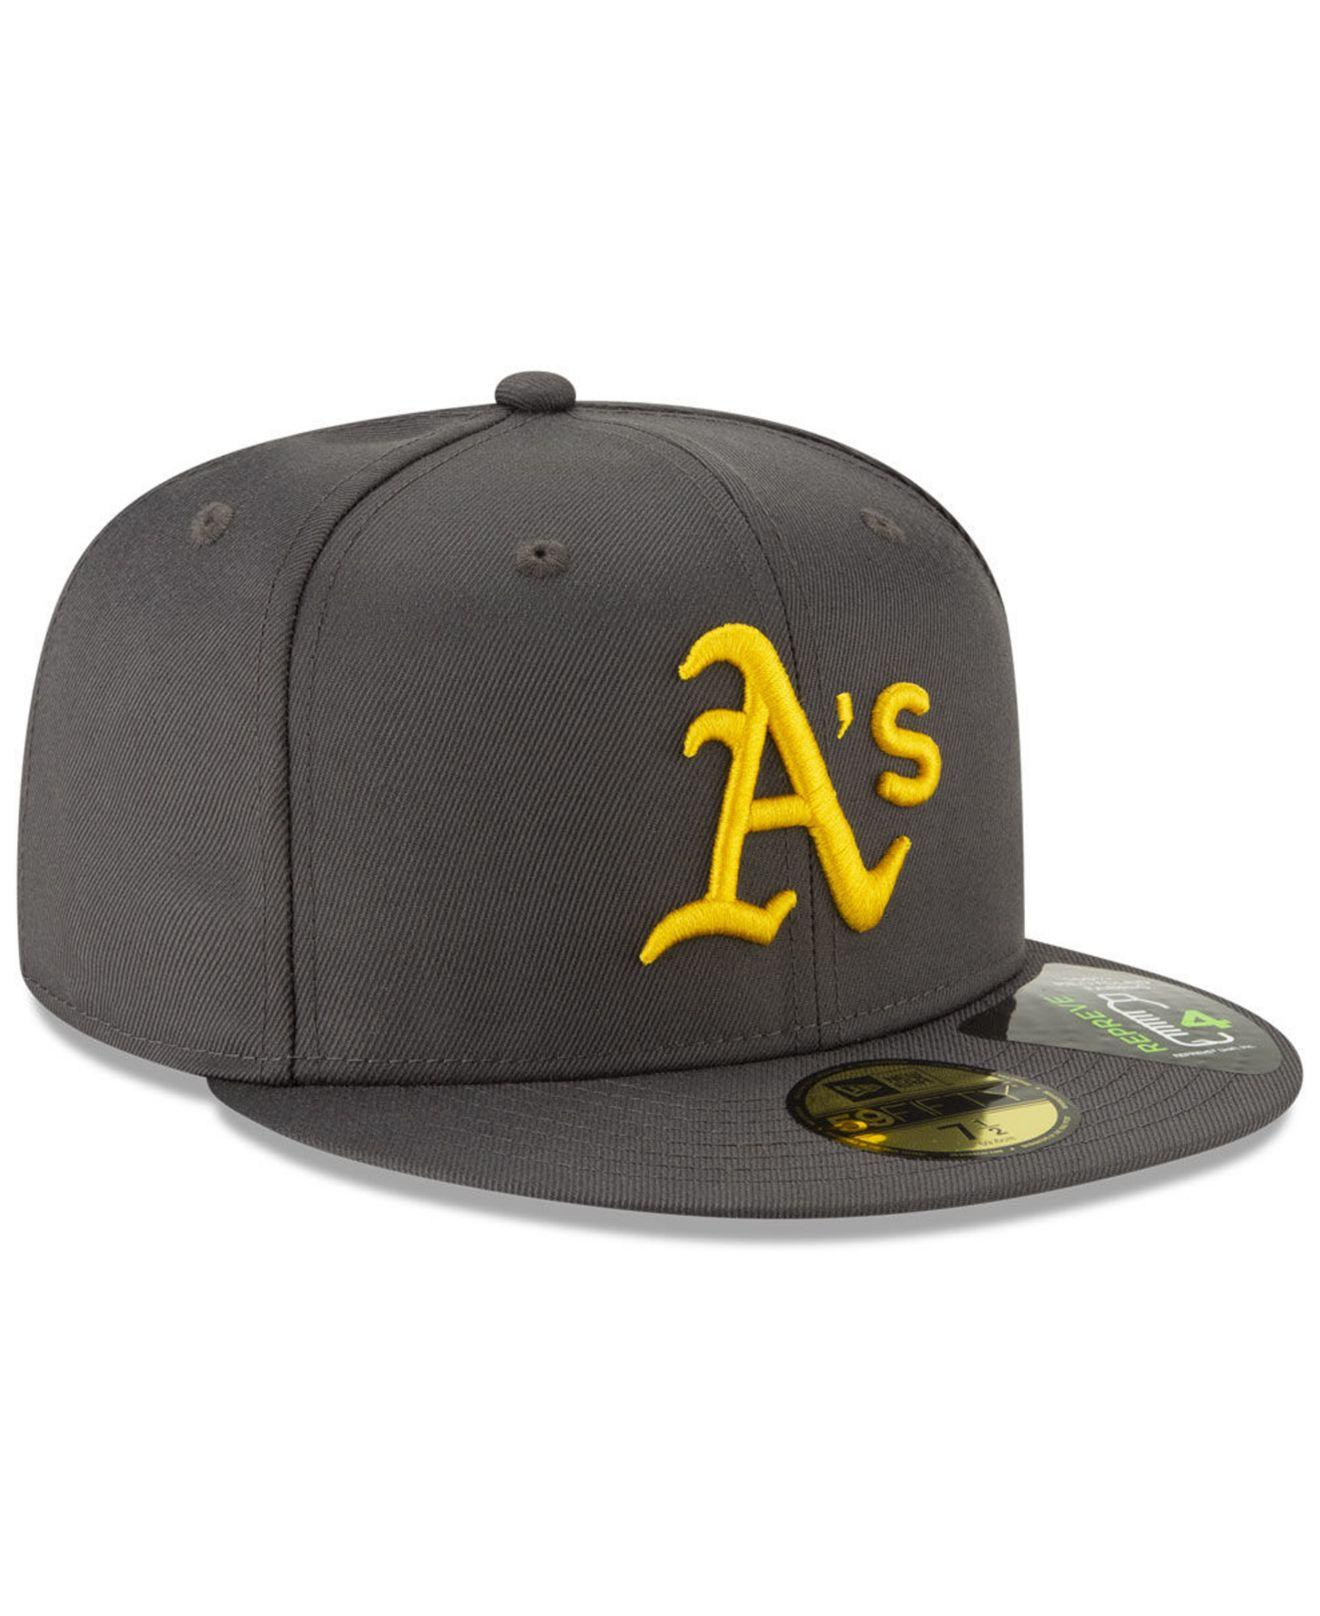 official photos a9b46 35619 ... Oakland Athletics Recycled 59fifty Fitted Cap for Men - Lyst. View  fullscreen